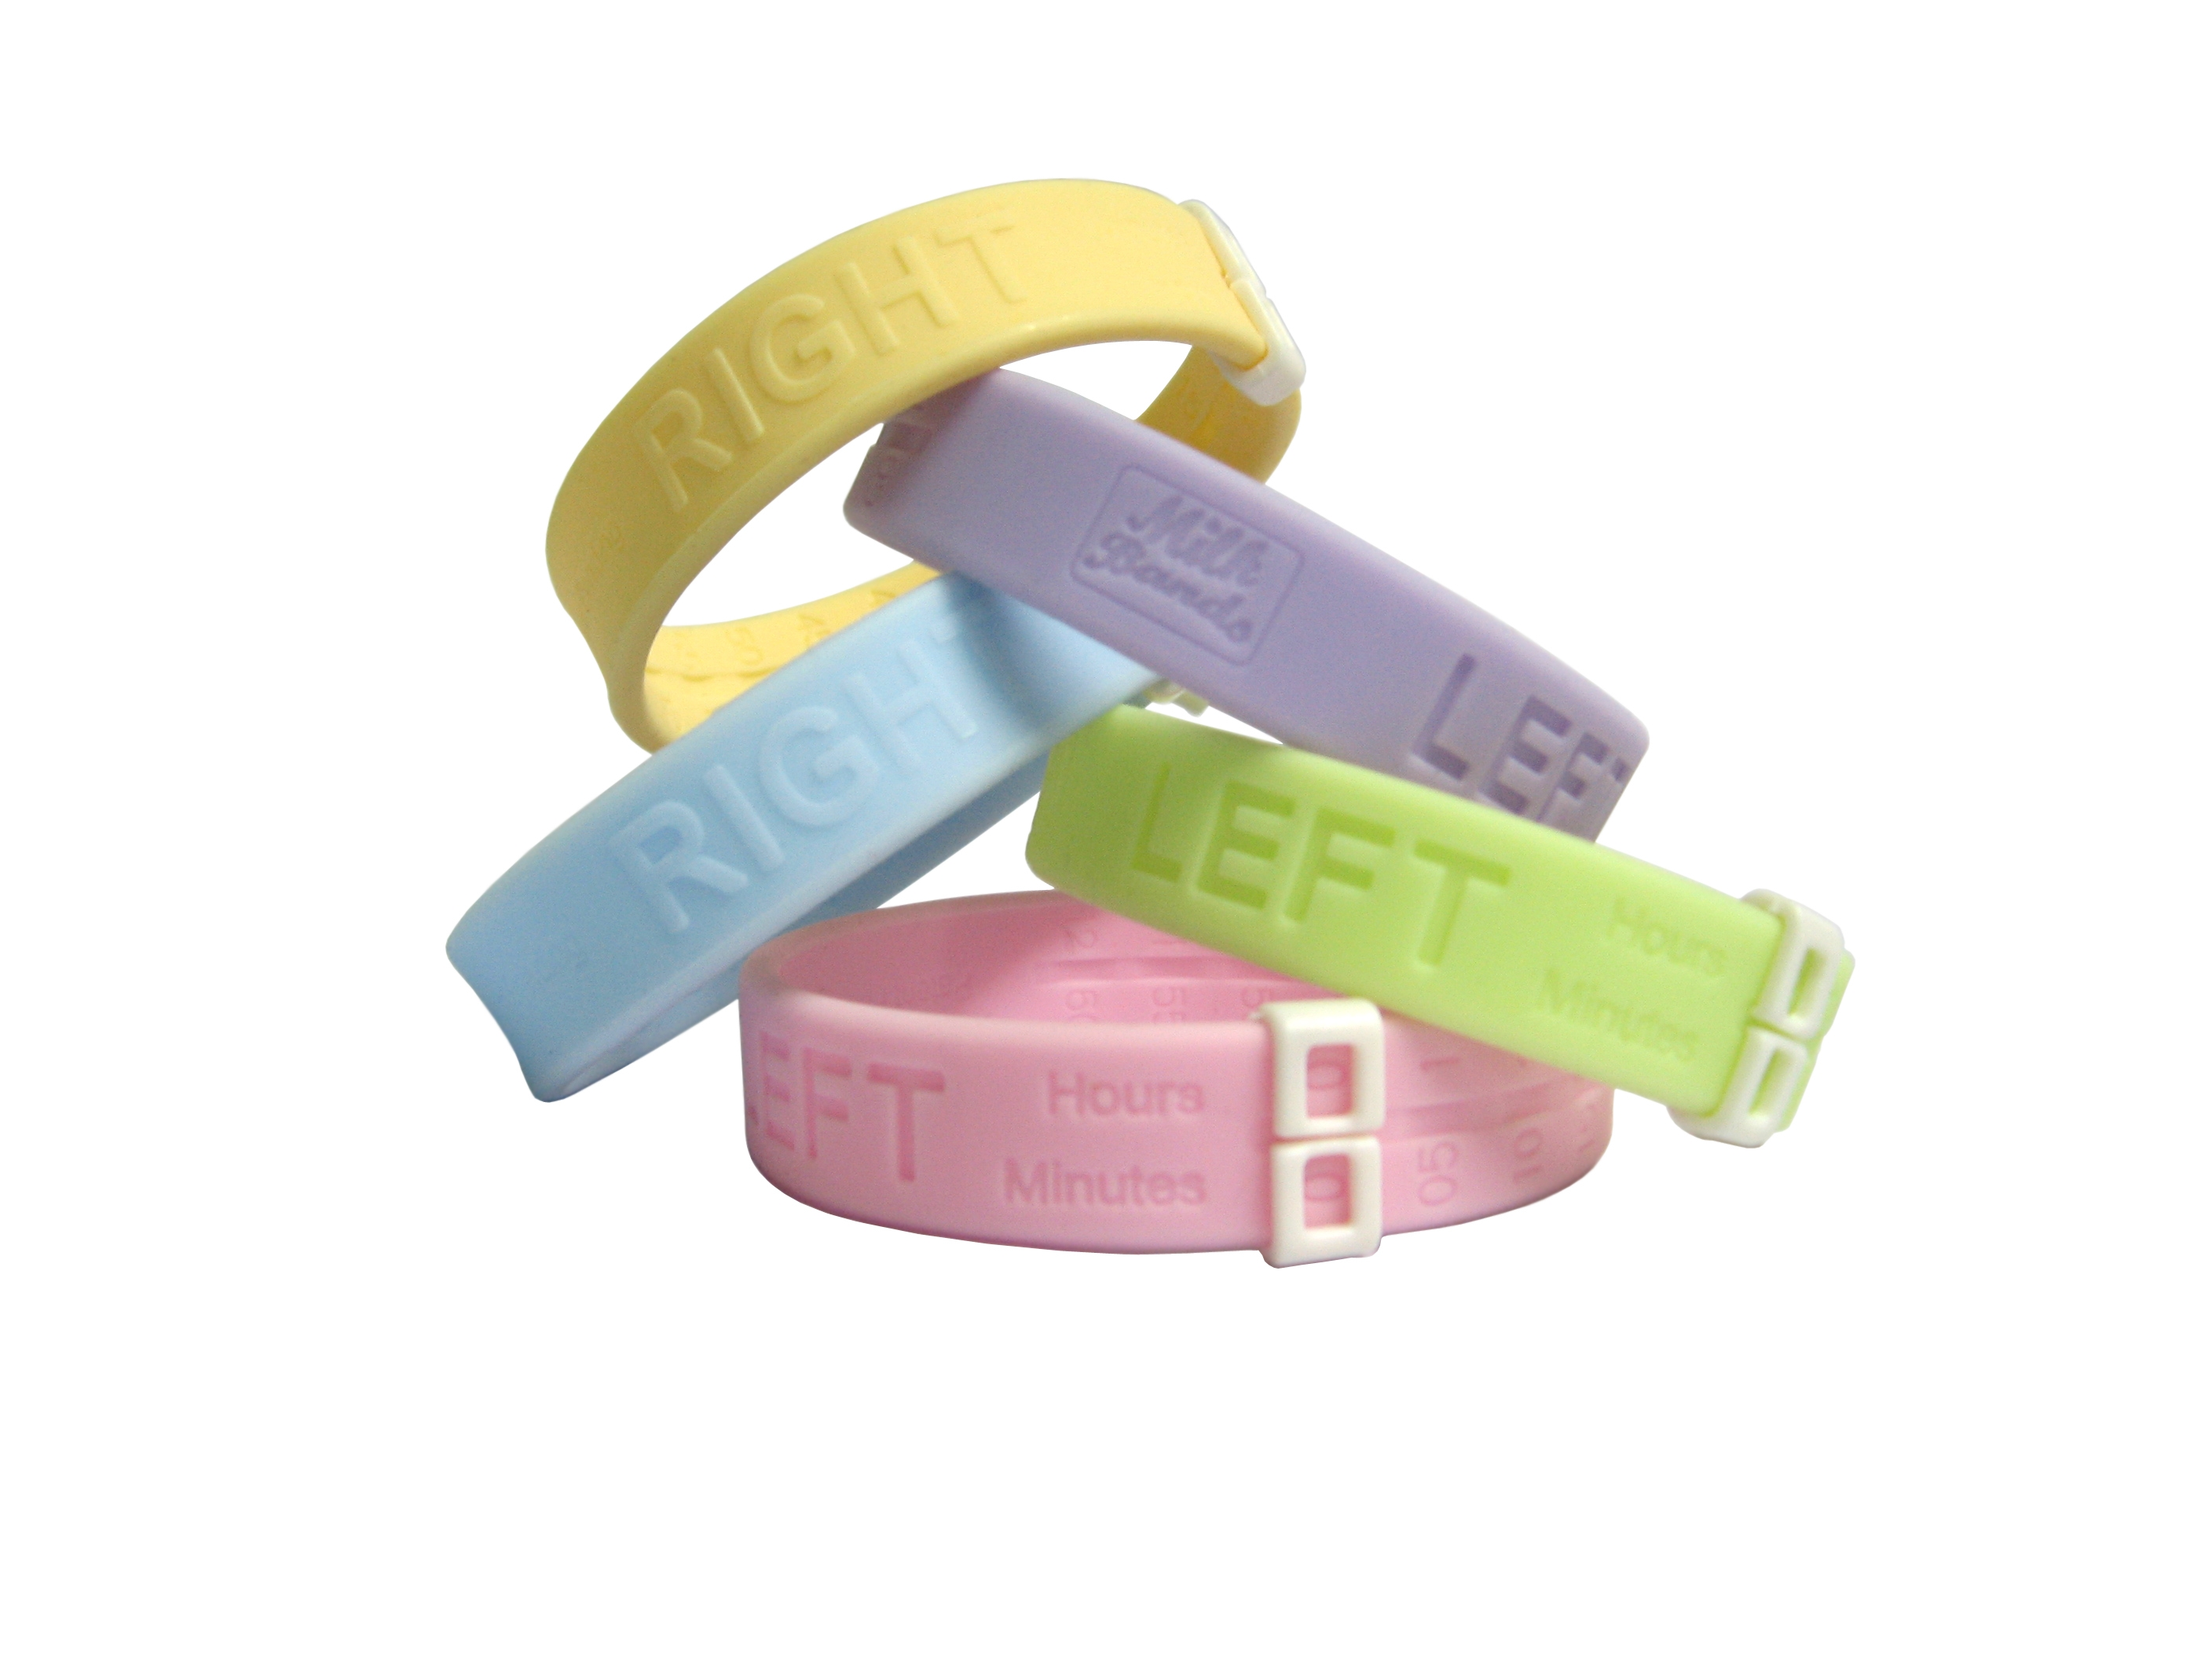 Milkbands- Breastfeeding/Nursing Bracelets